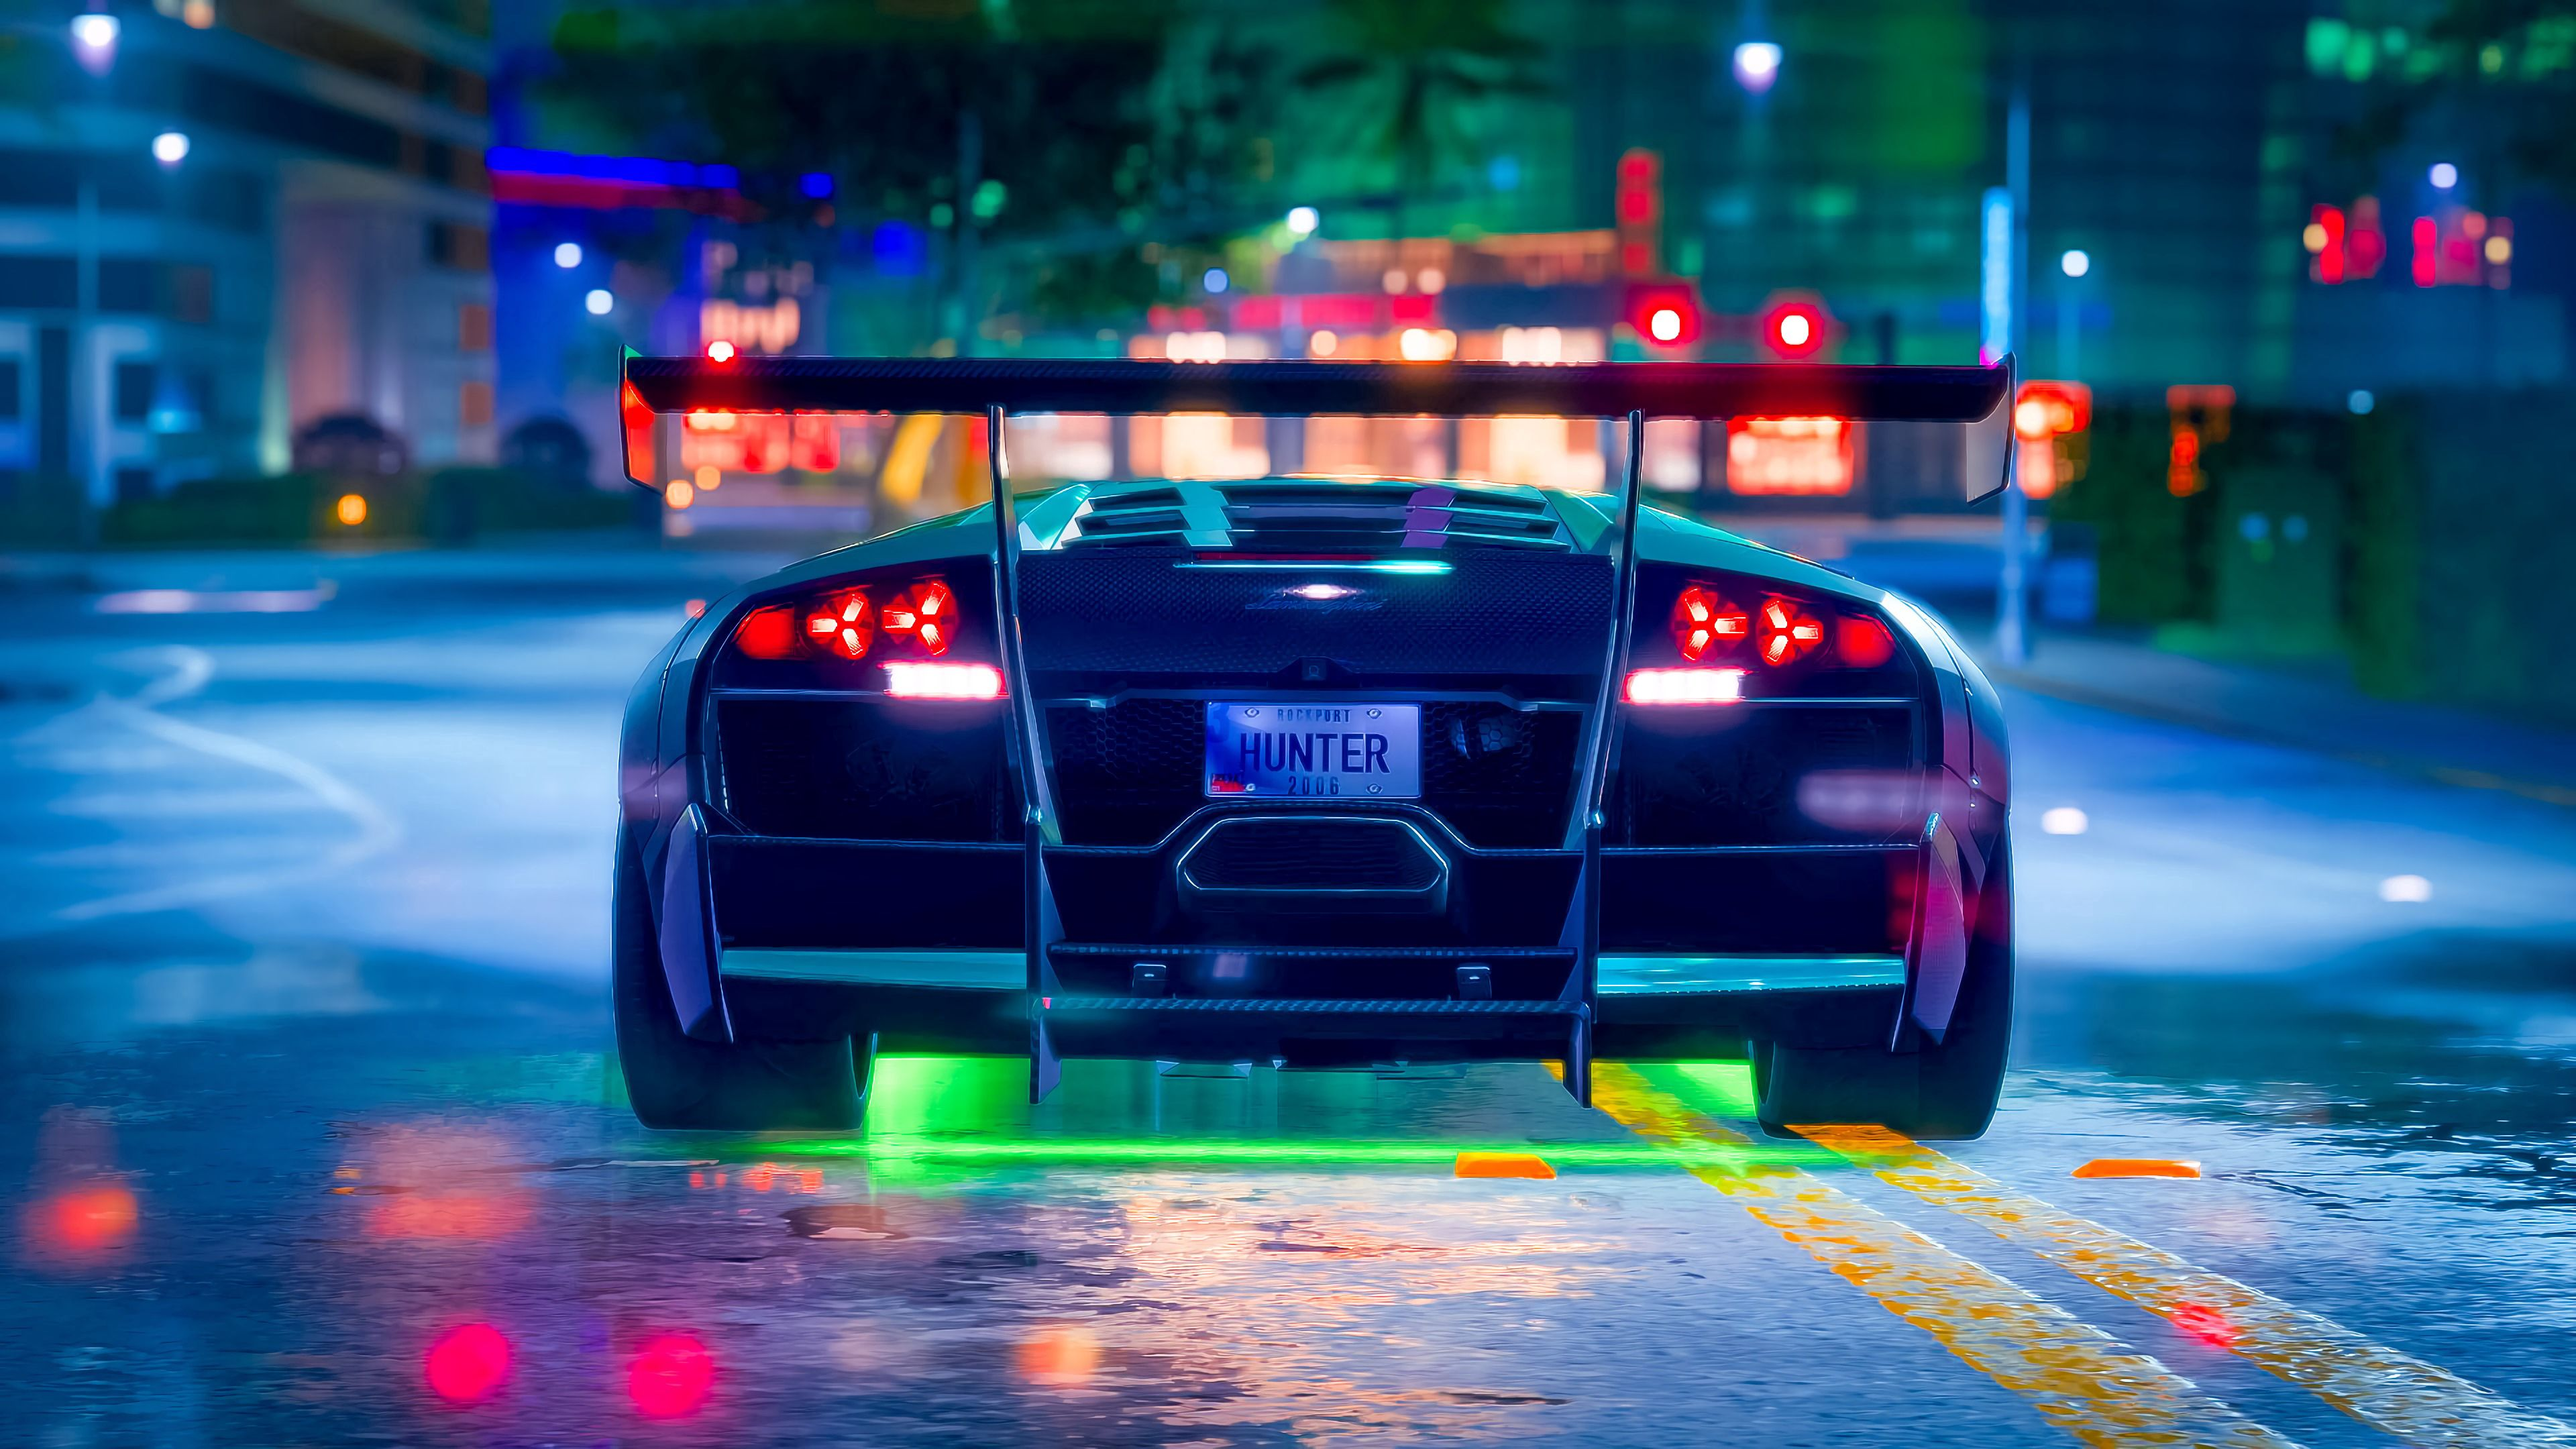 119436 download wallpaper Cars, Car, Machine, Sports Car, Sports, Neon, Backlight, Illumination, Road screensavers and pictures for free